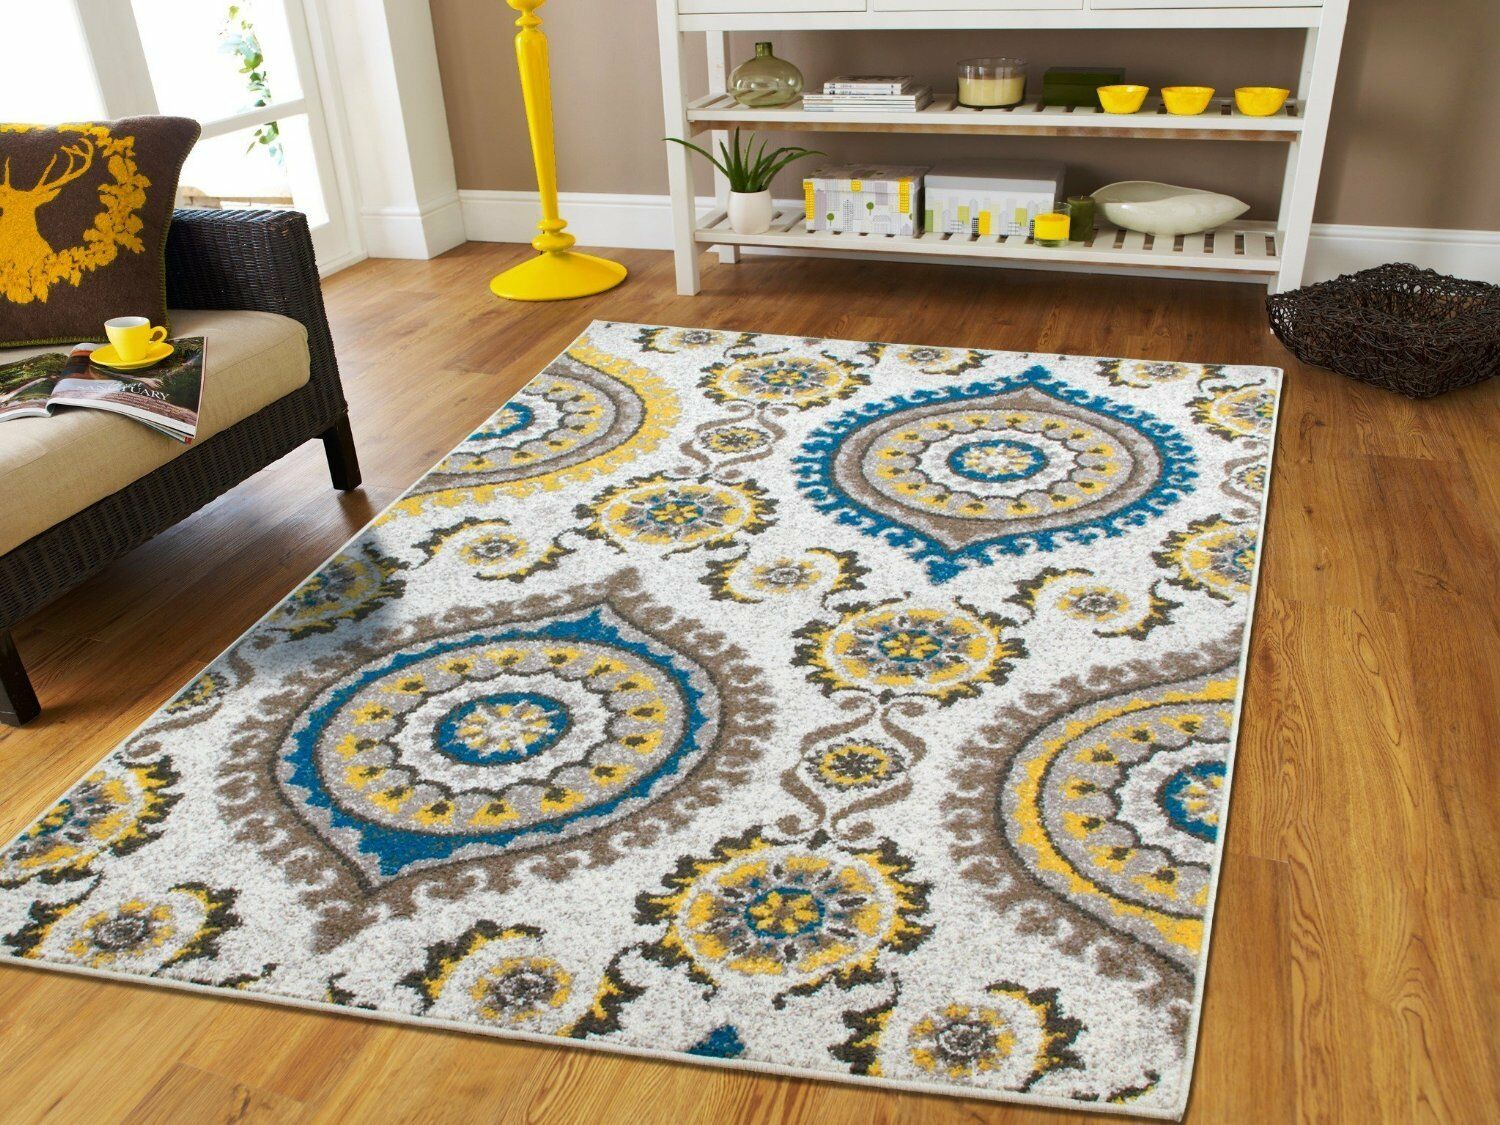 Large Rugs Blue Modern Contemporary Area 8x11 5x8 Rug Set 2x3 1 Of 1free Shipping See More